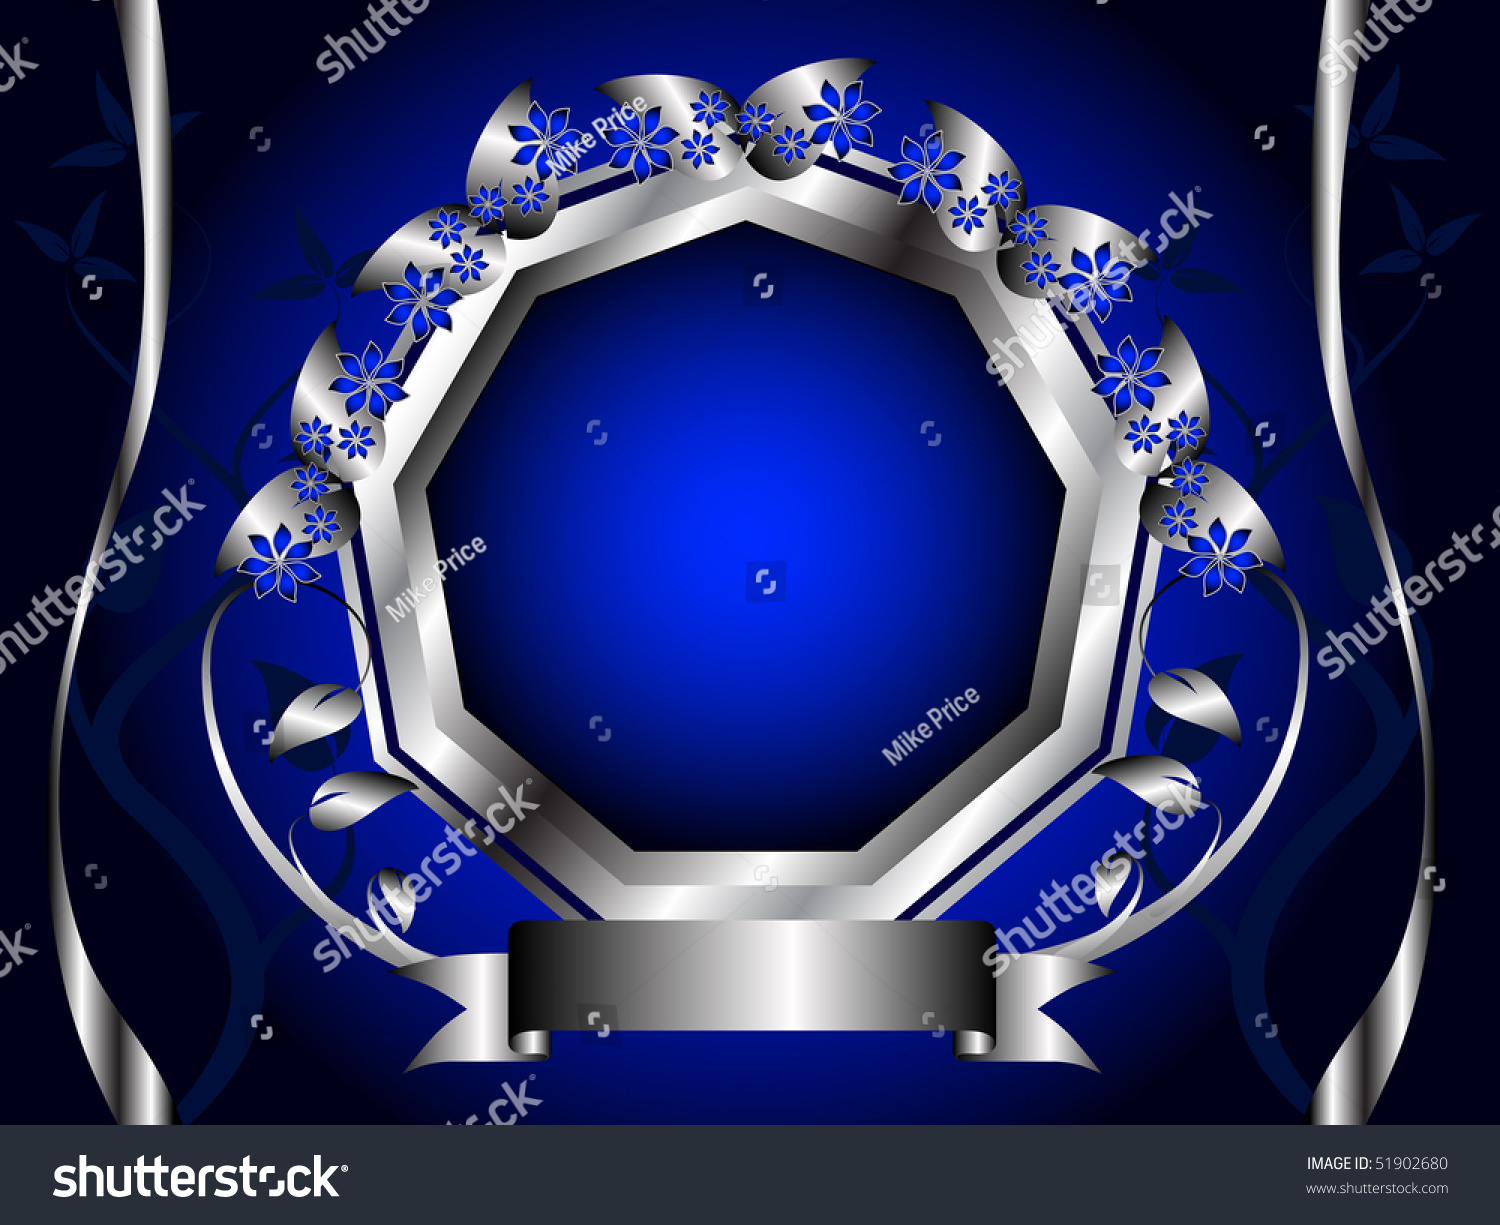 A Blue And Silver Floral Design With Room For Text On Royal Background